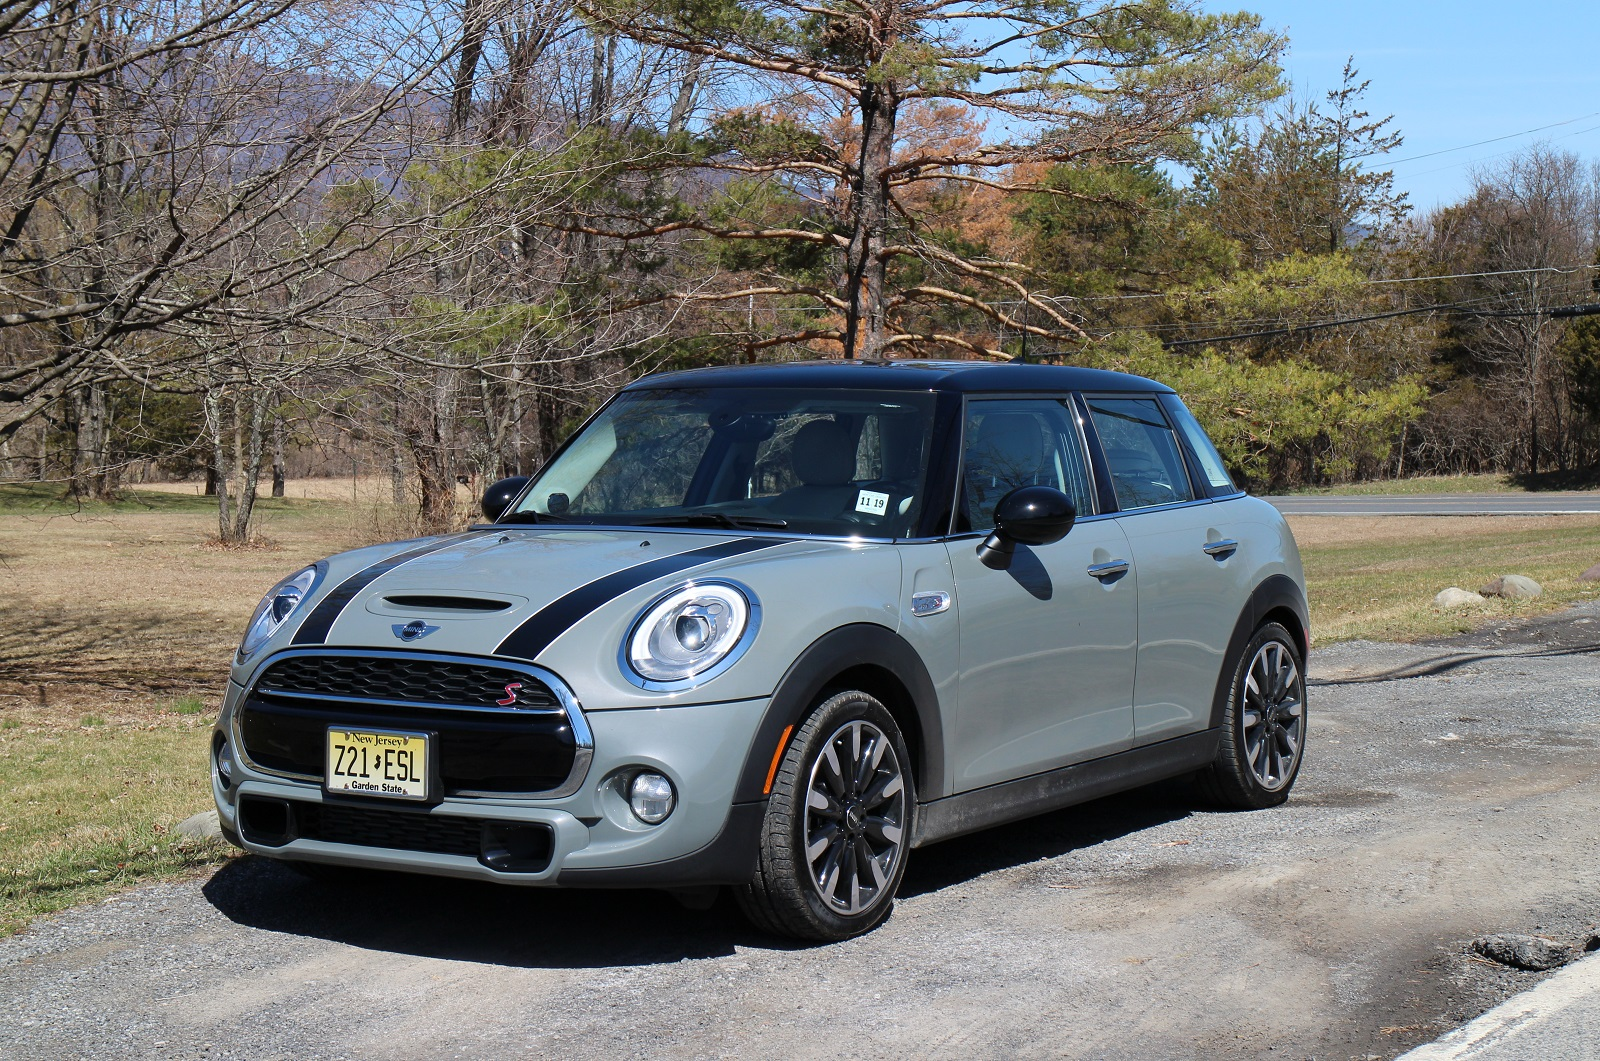 2015 MINI Cooper S Hardtop 4-Door: Gas Mileage Review